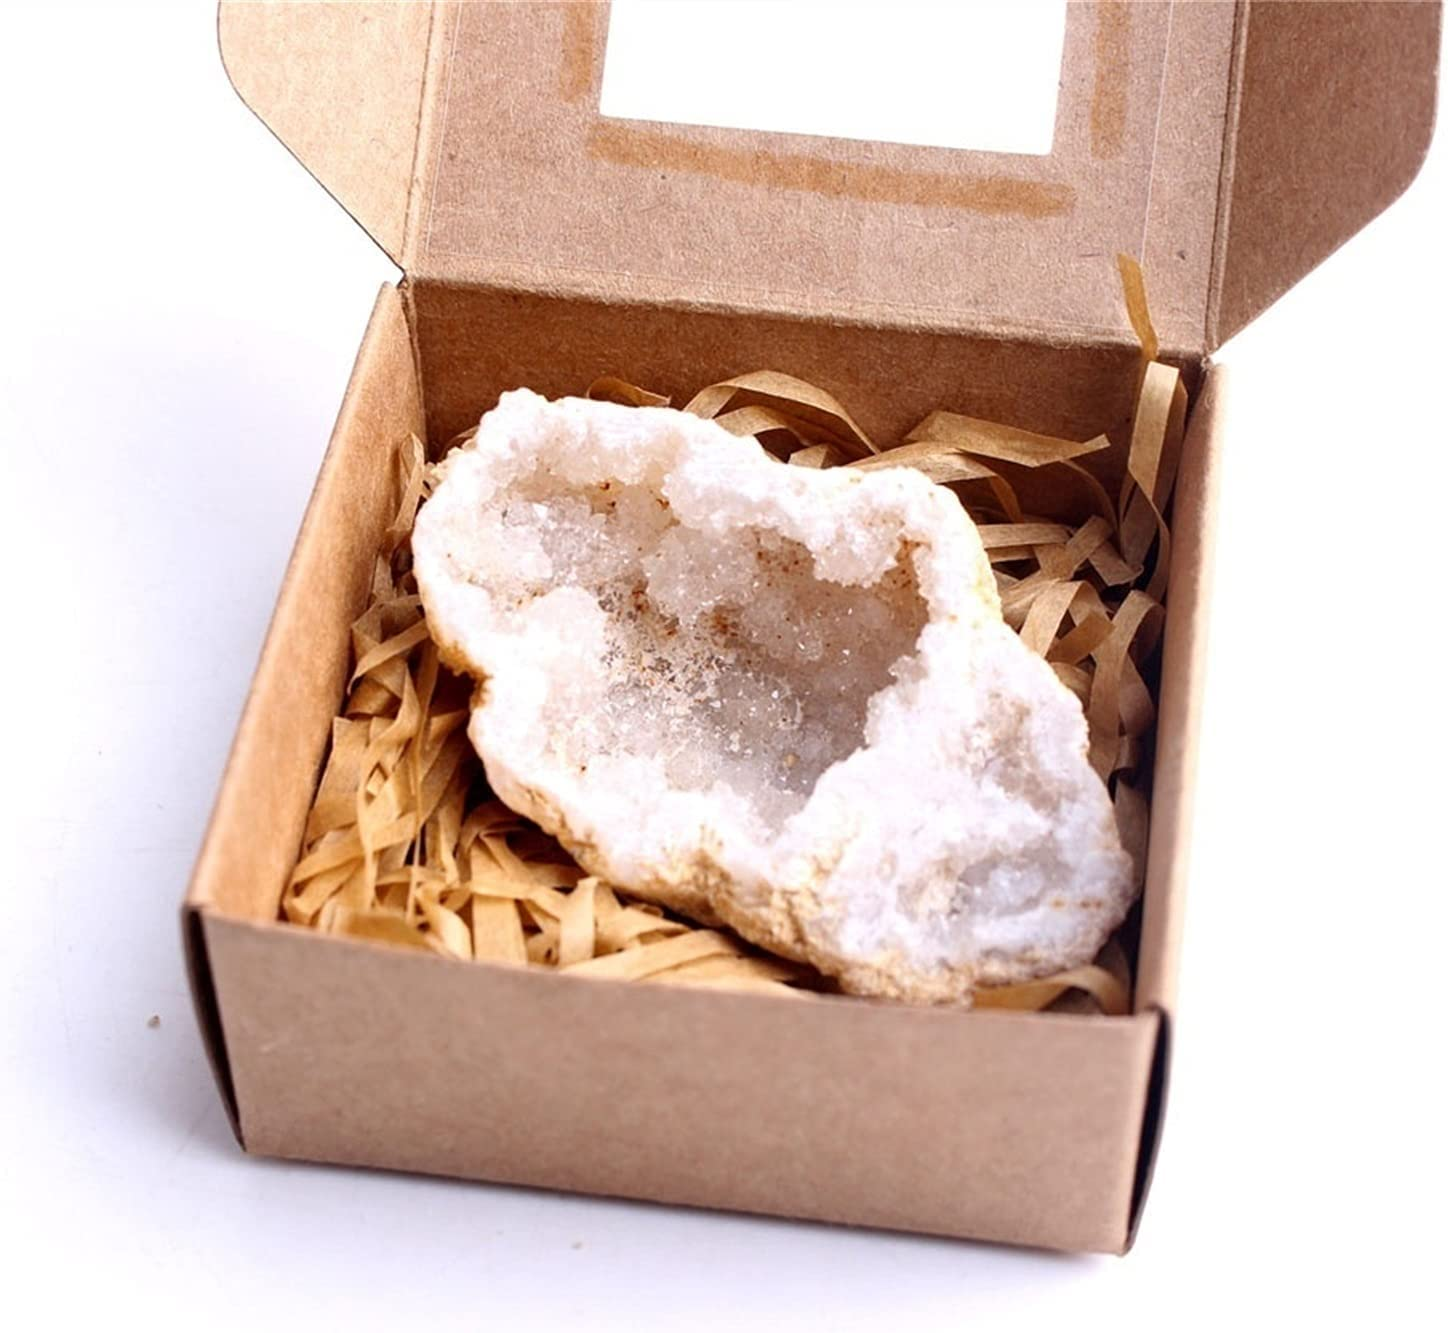 WUBBHIN Max 58% OFF Crystal Rough Natural Agate Clust with Box Max 52% OFF Geode